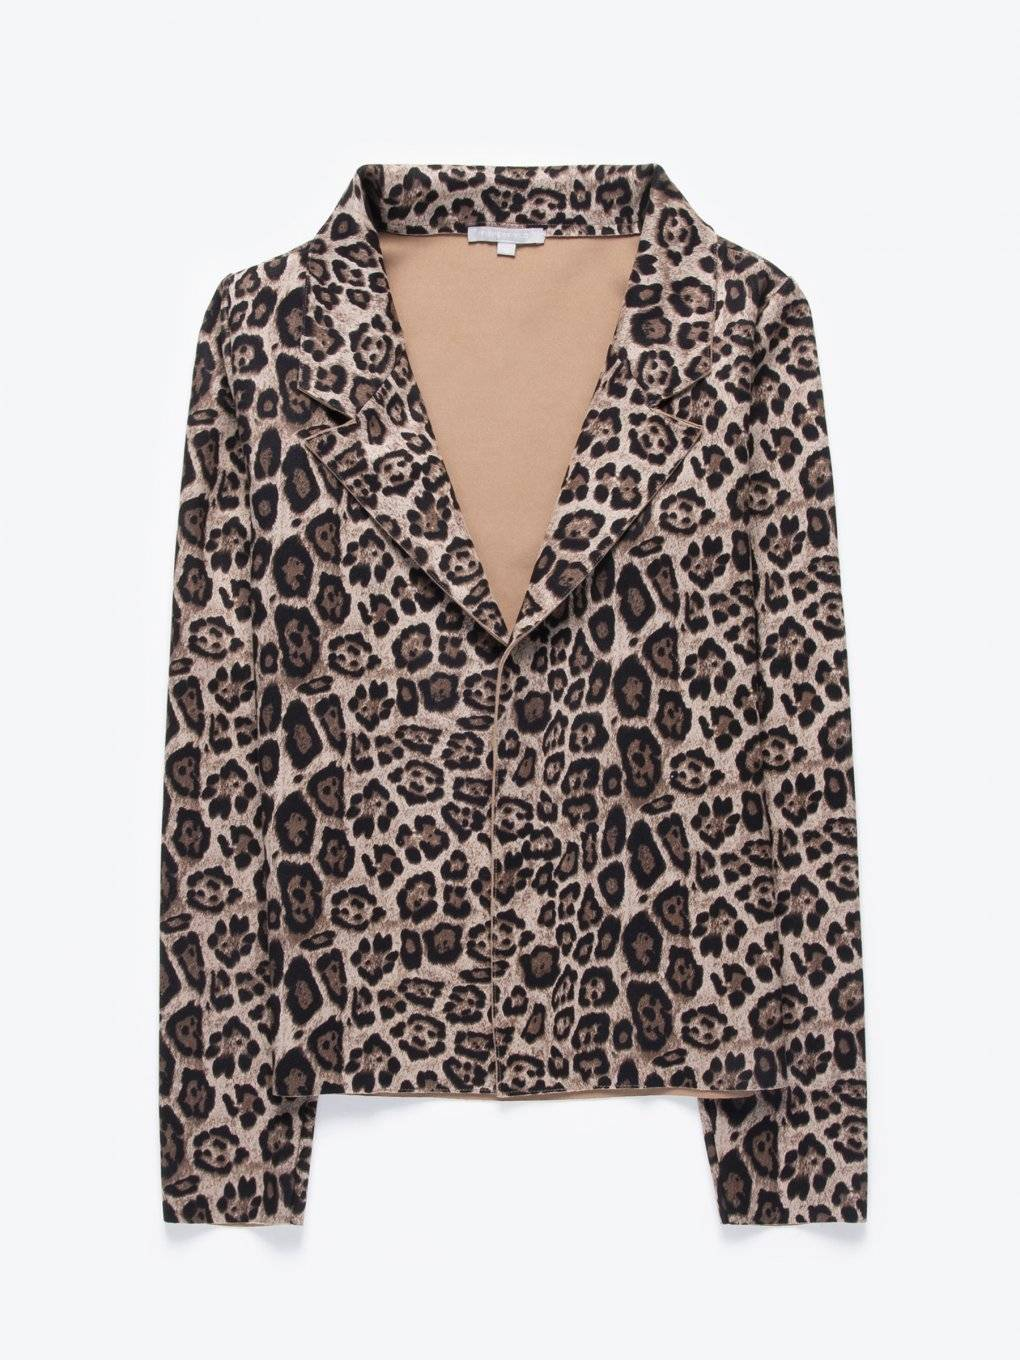 Animal print faux suede blazer